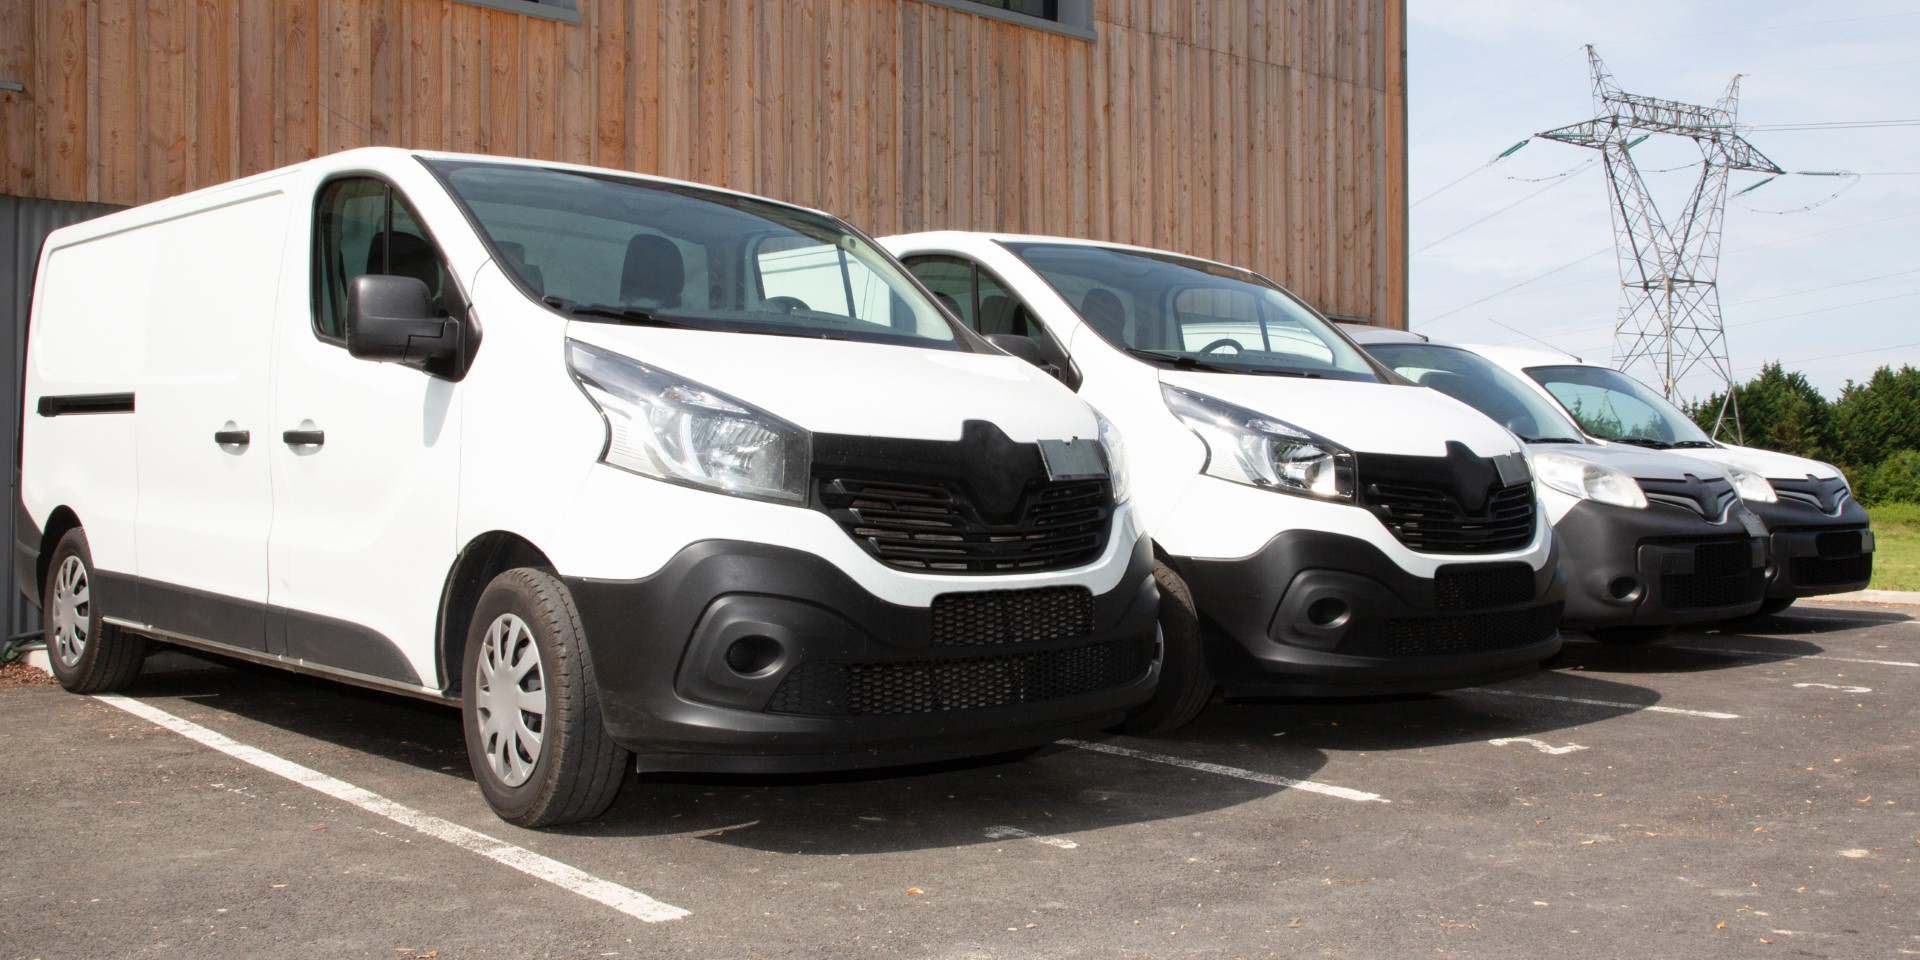 Light commercial vehicle registrations have increased but there is concern over the lack of services availability.